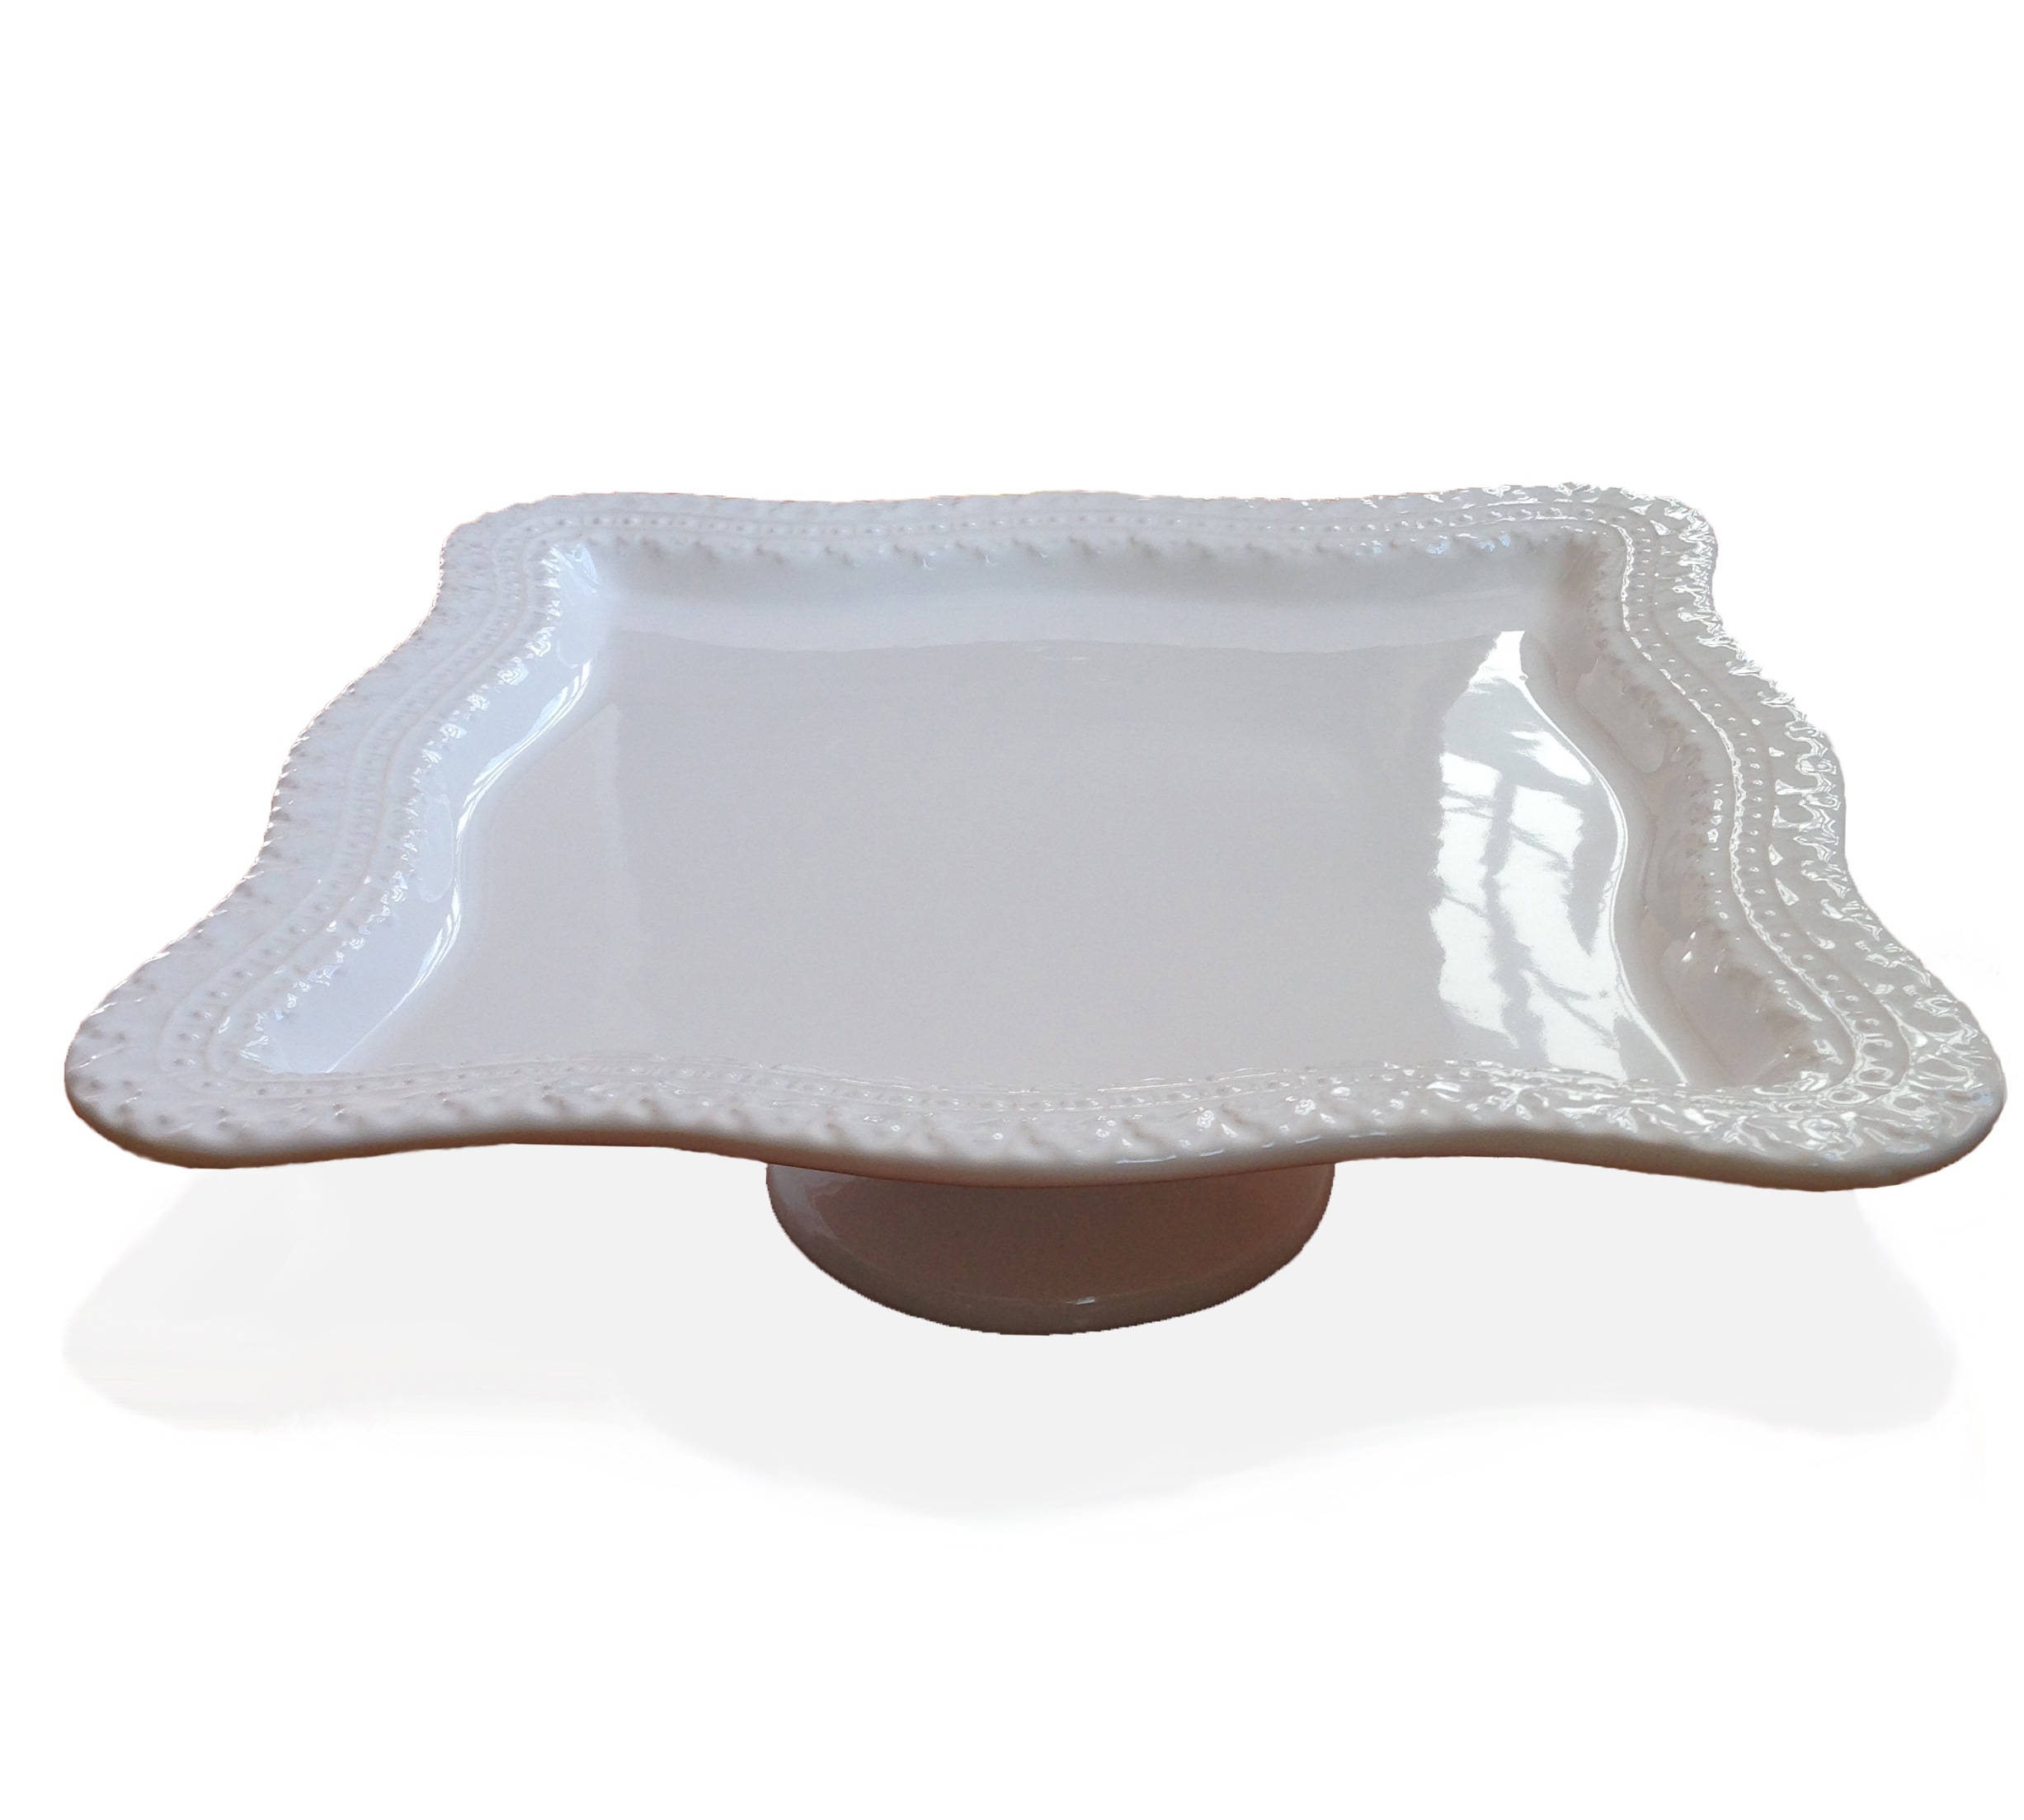 Footed Cake Plate Square with Border White